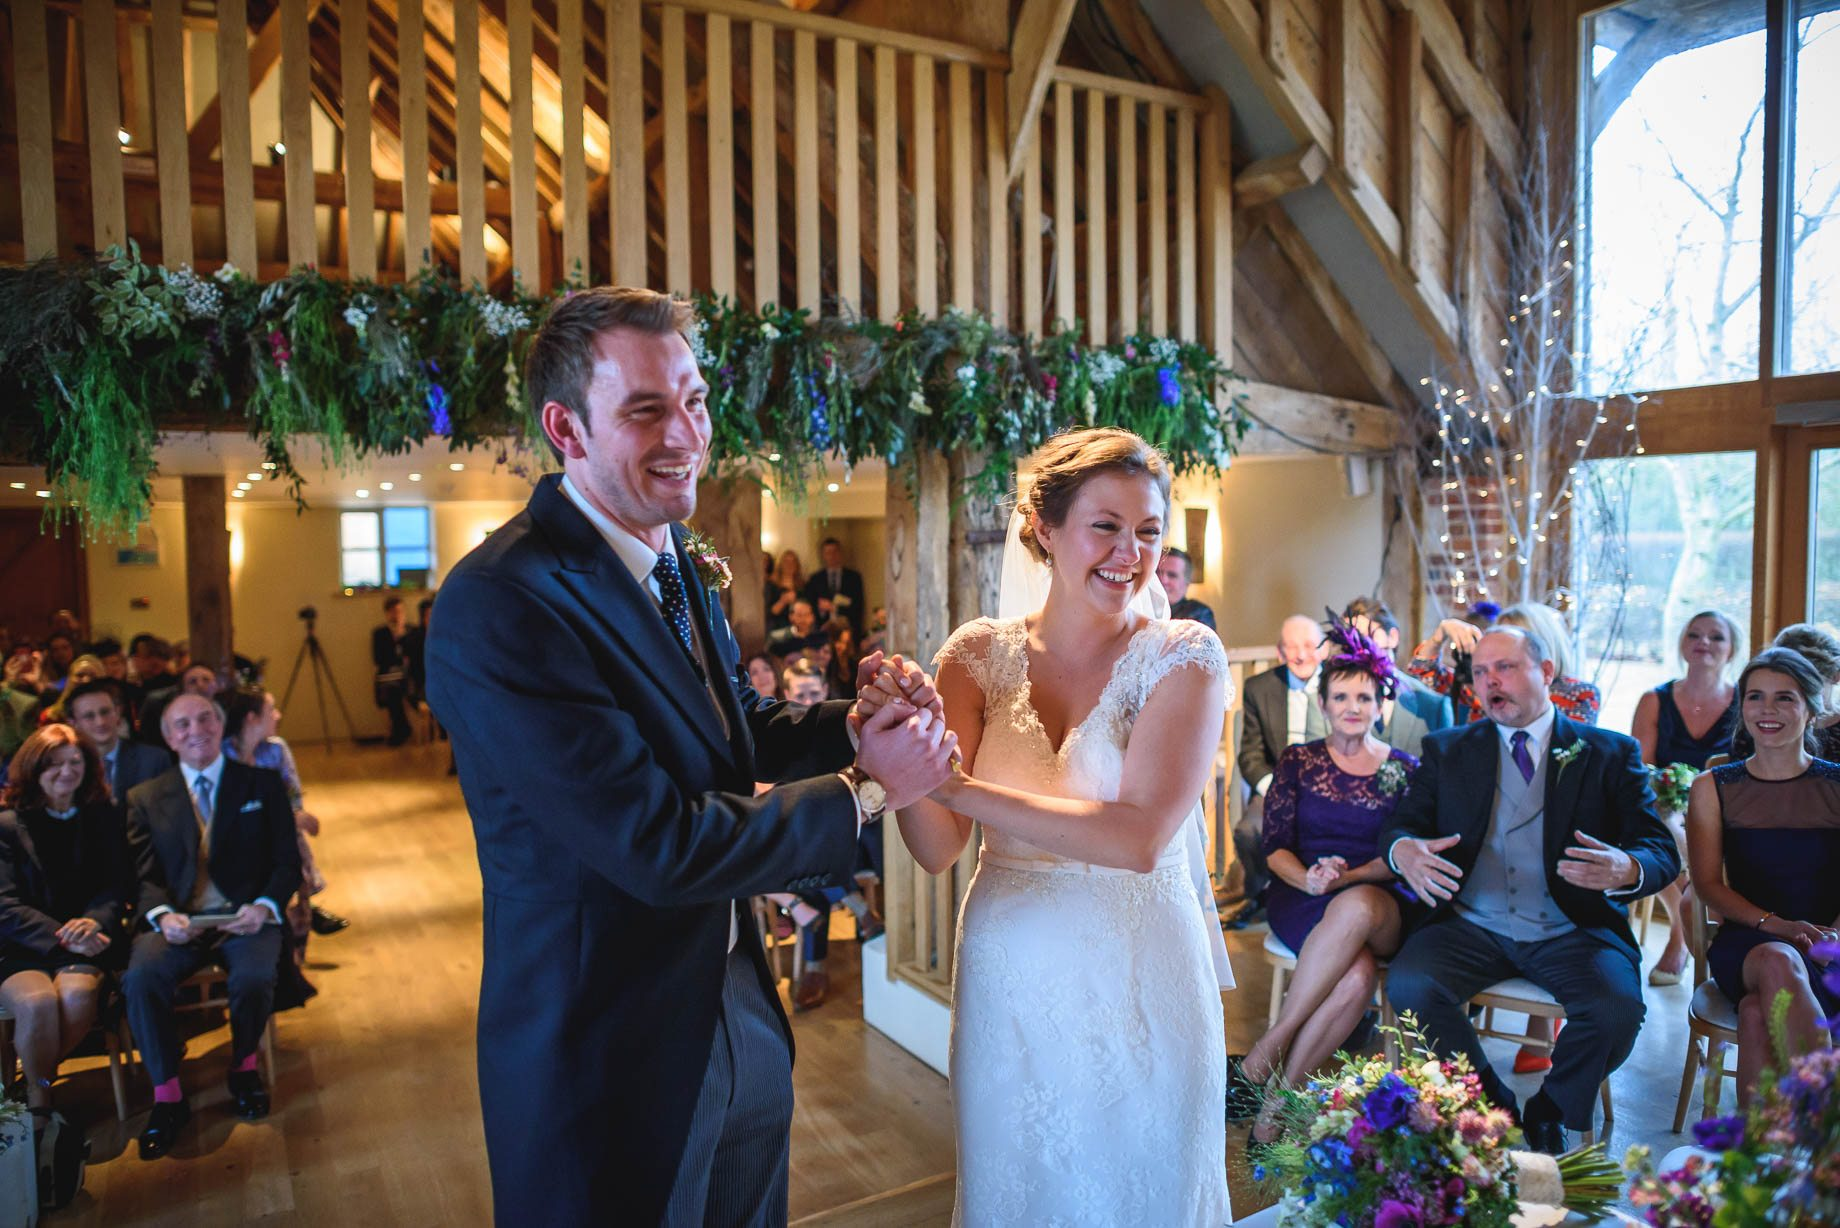 Bury Court Barn wedding photography - Ashley and Henry by Guy Collier Photography (56 of 188)